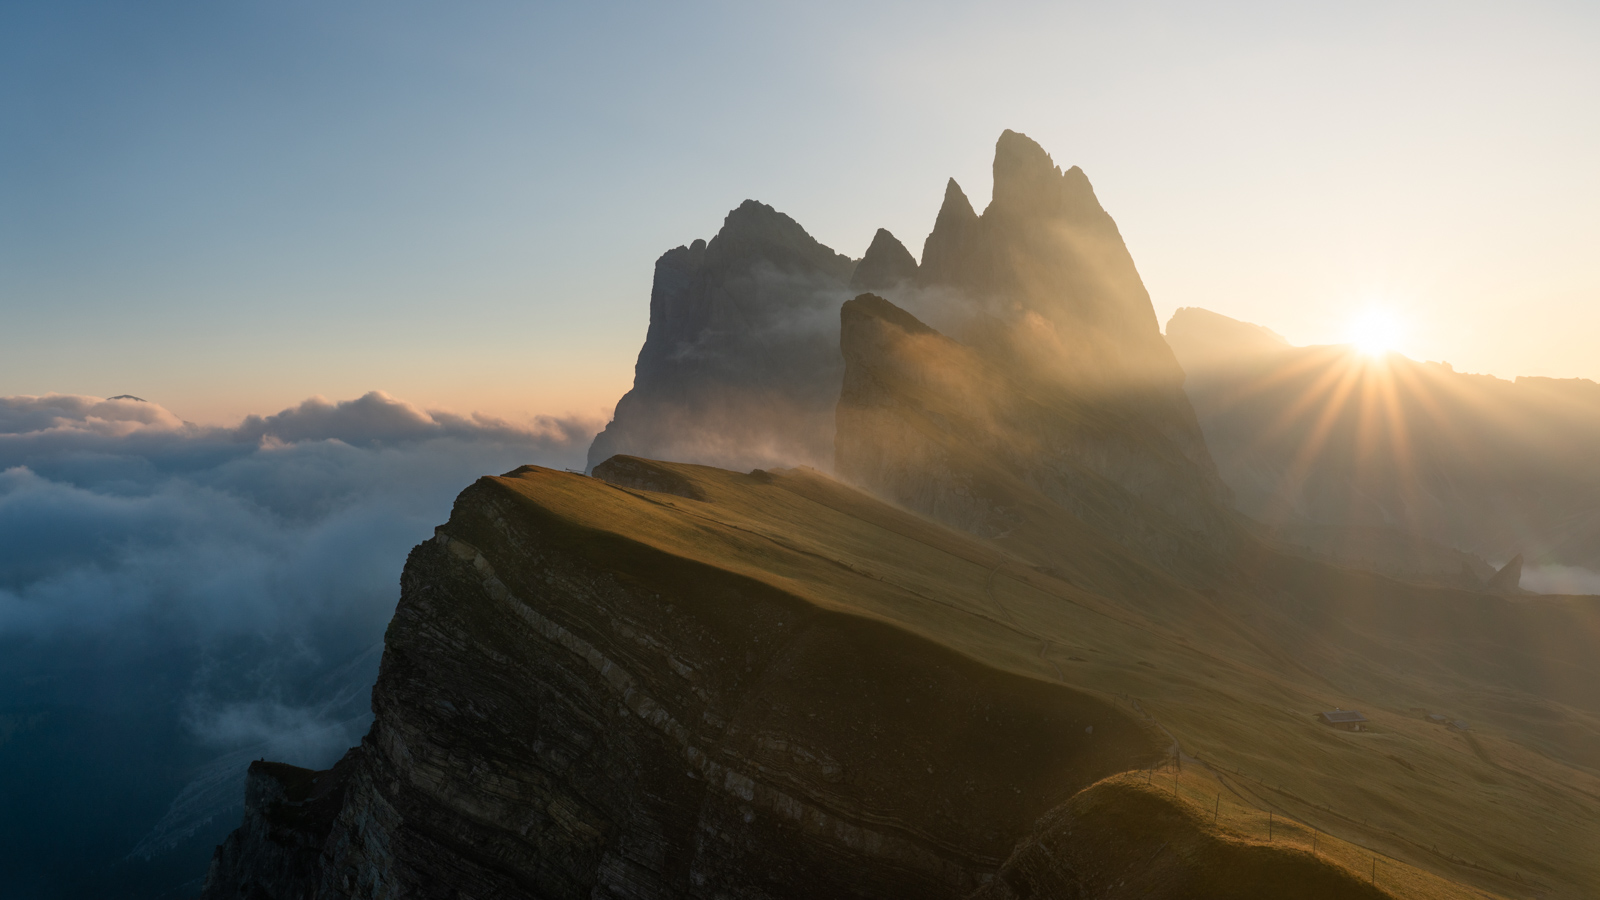 Sunrise over Seceda in the Dolomites